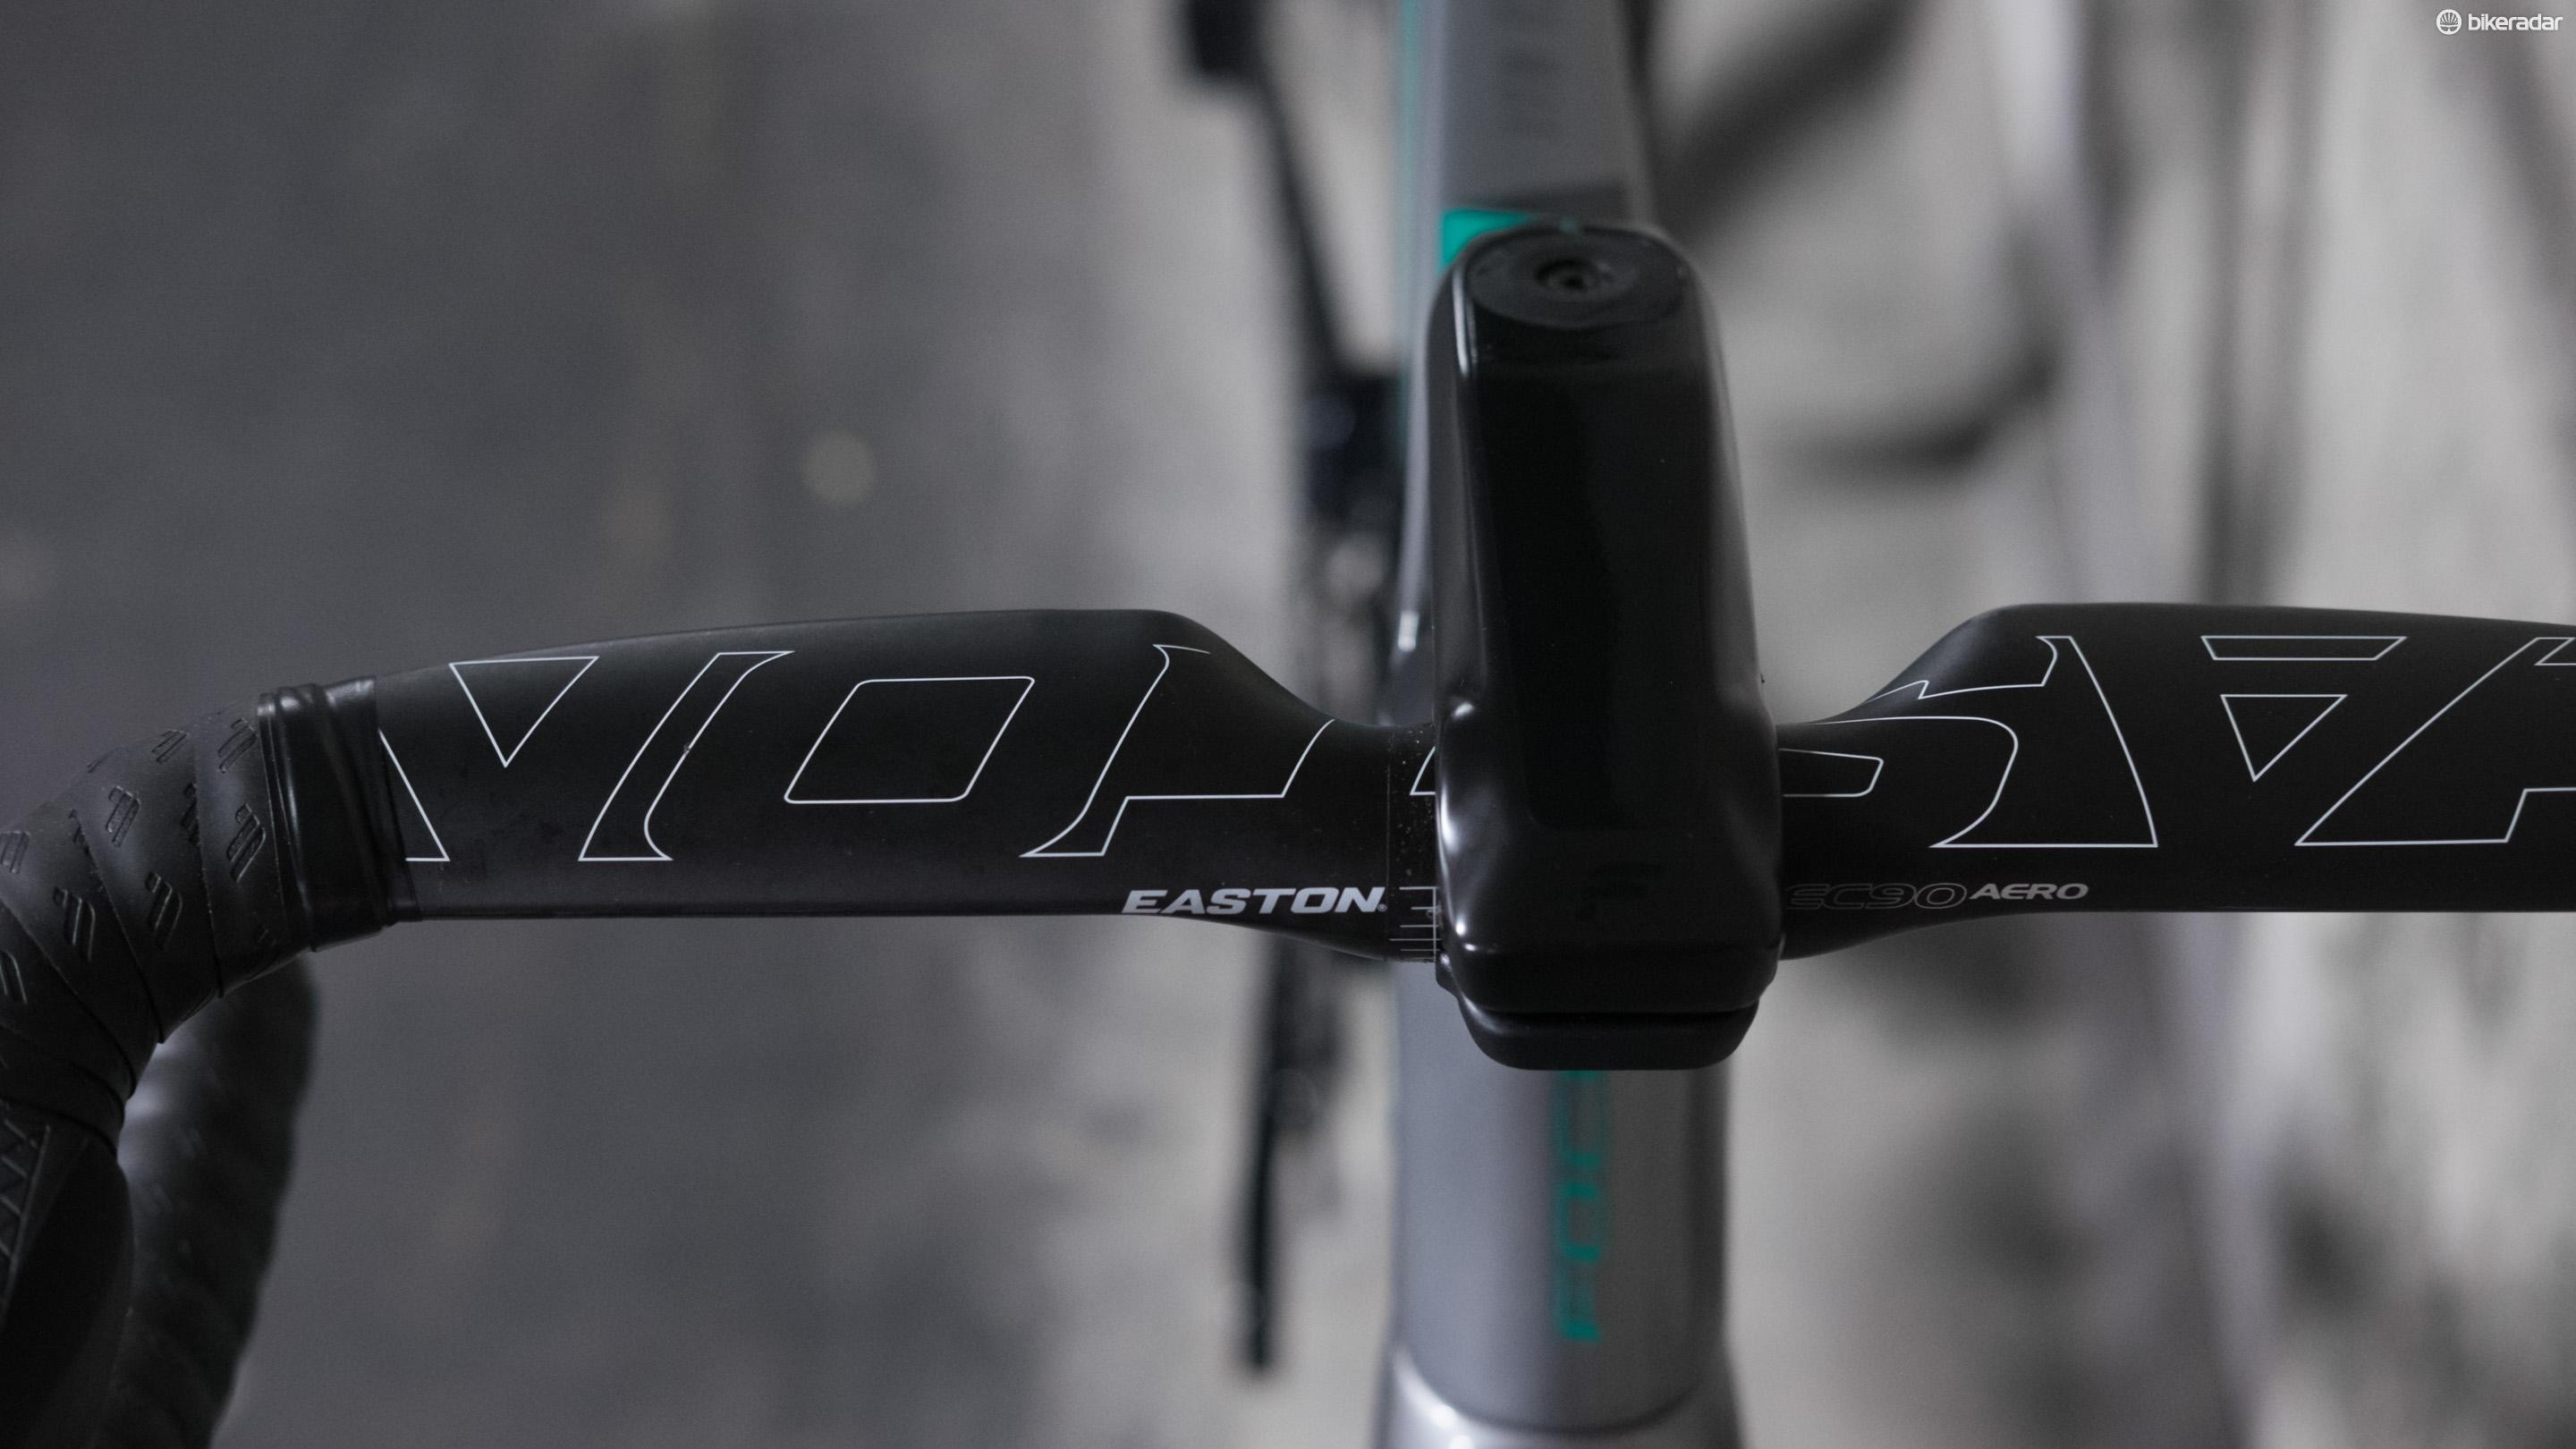 The carbon stem is neatly integrated into the overall design